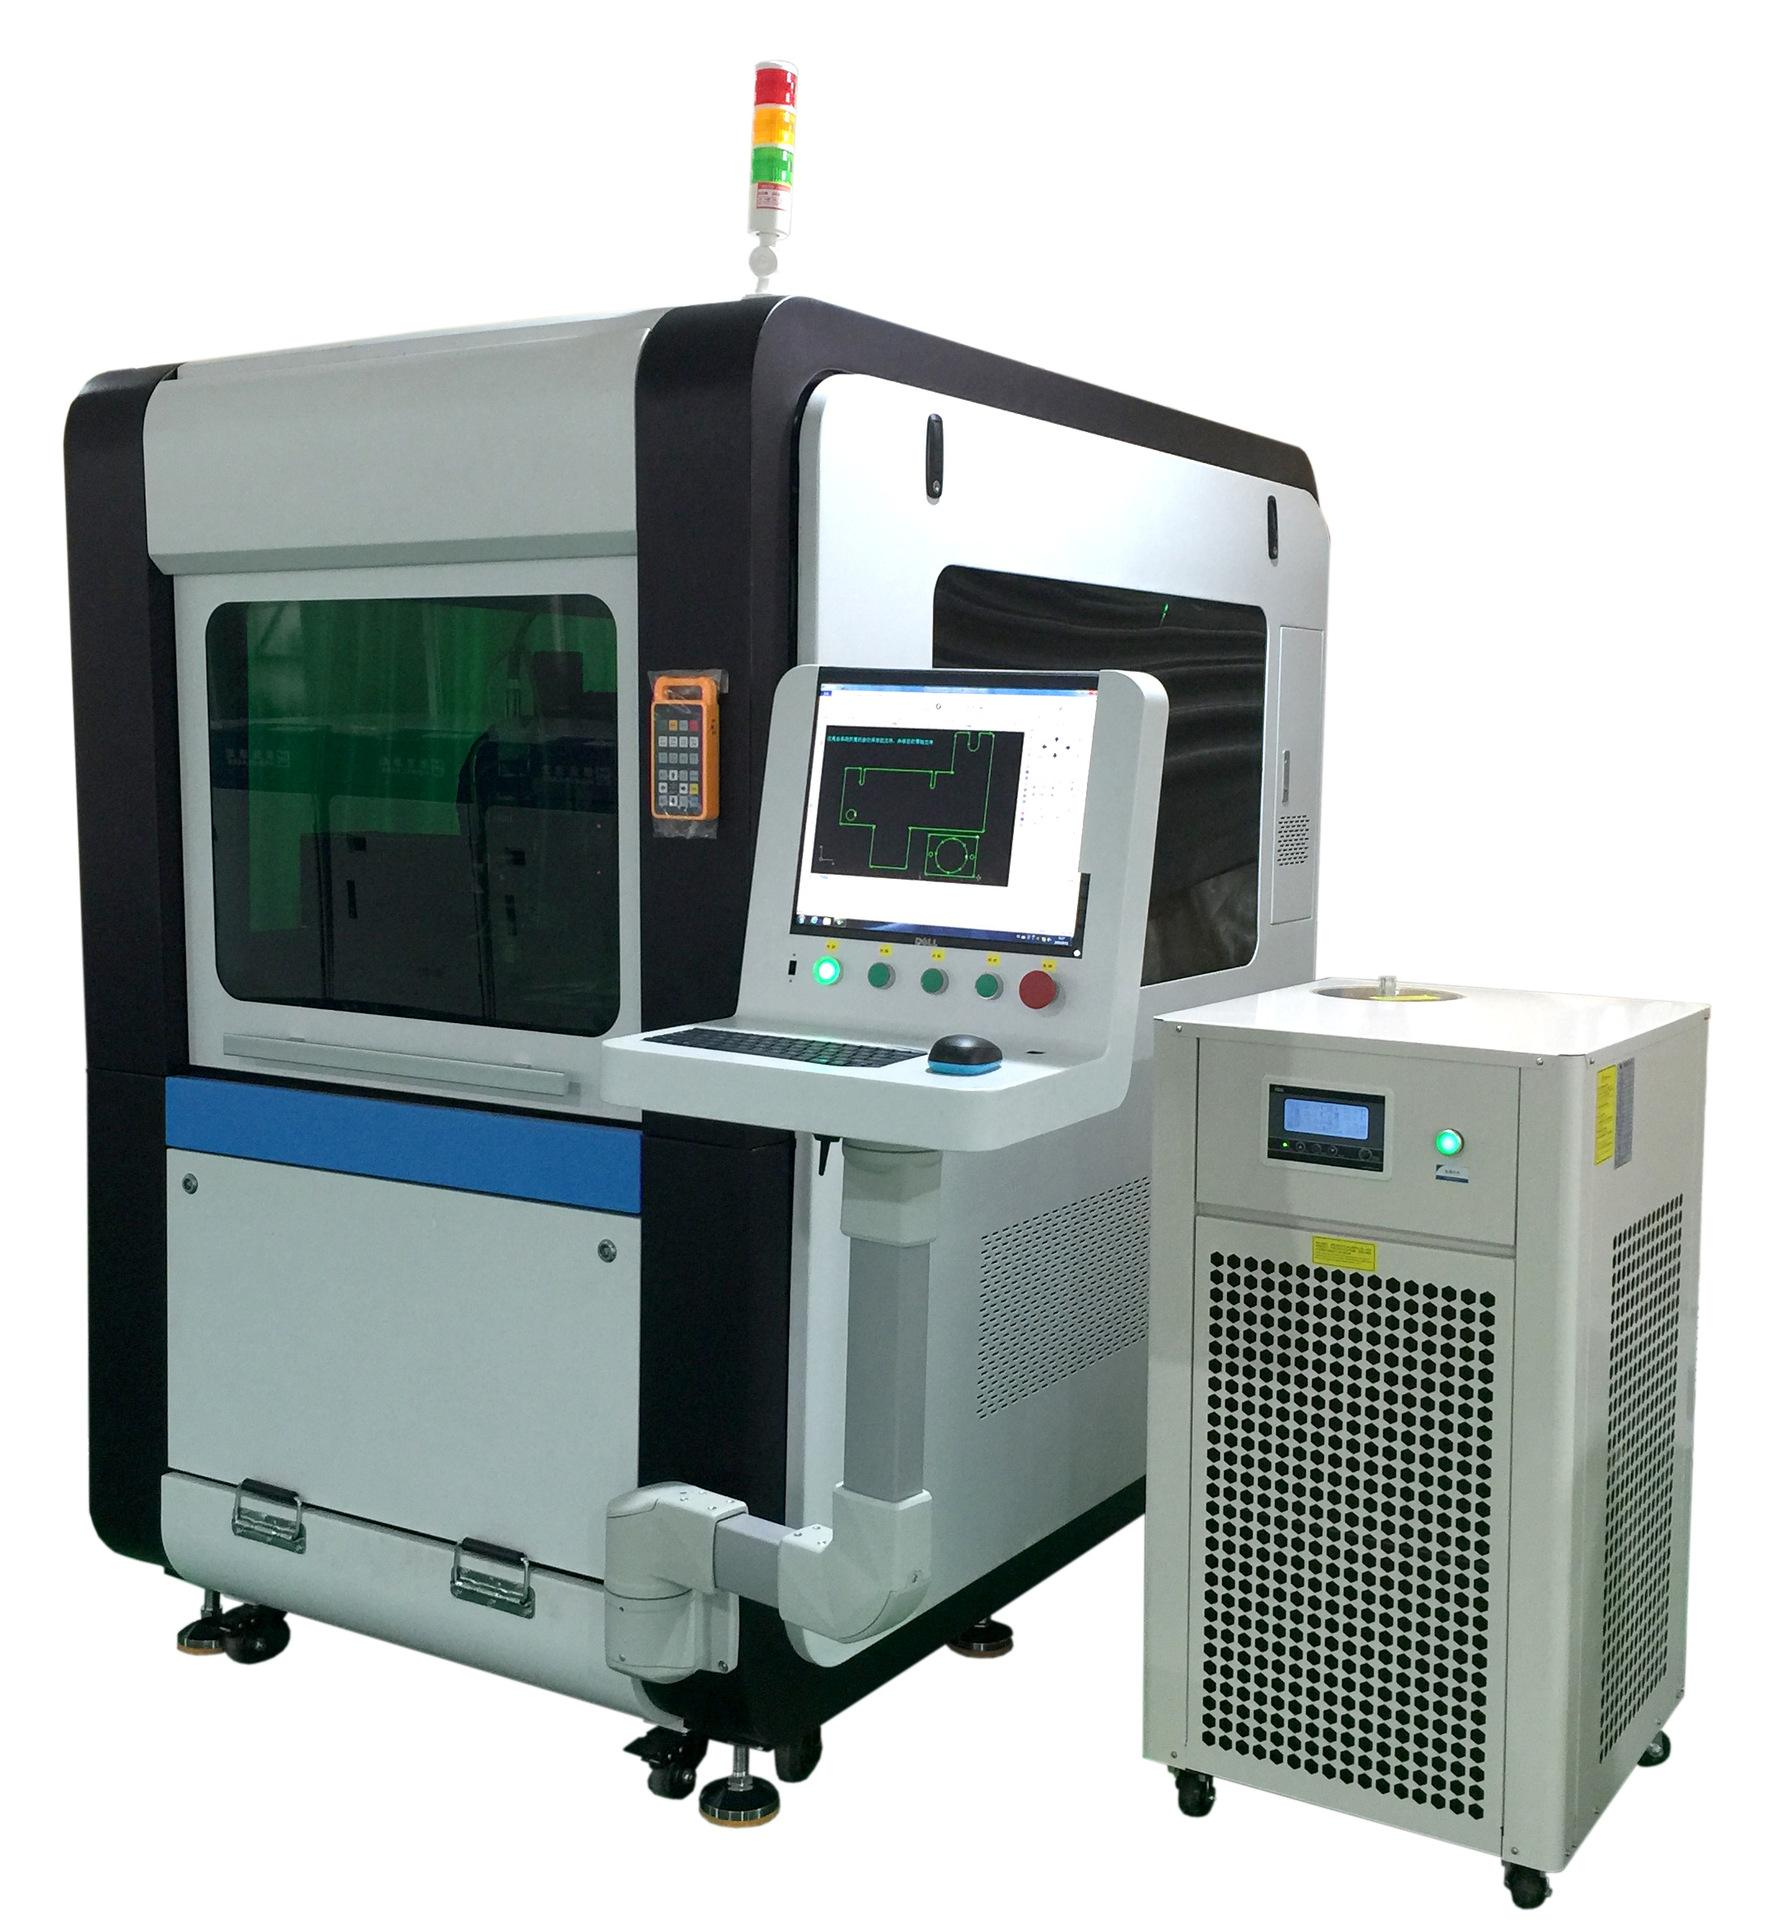 750W 6040 Fiber Laser Cutting Machine 300/500W fiber laser cutting machine Small Fiber Laser Cutter